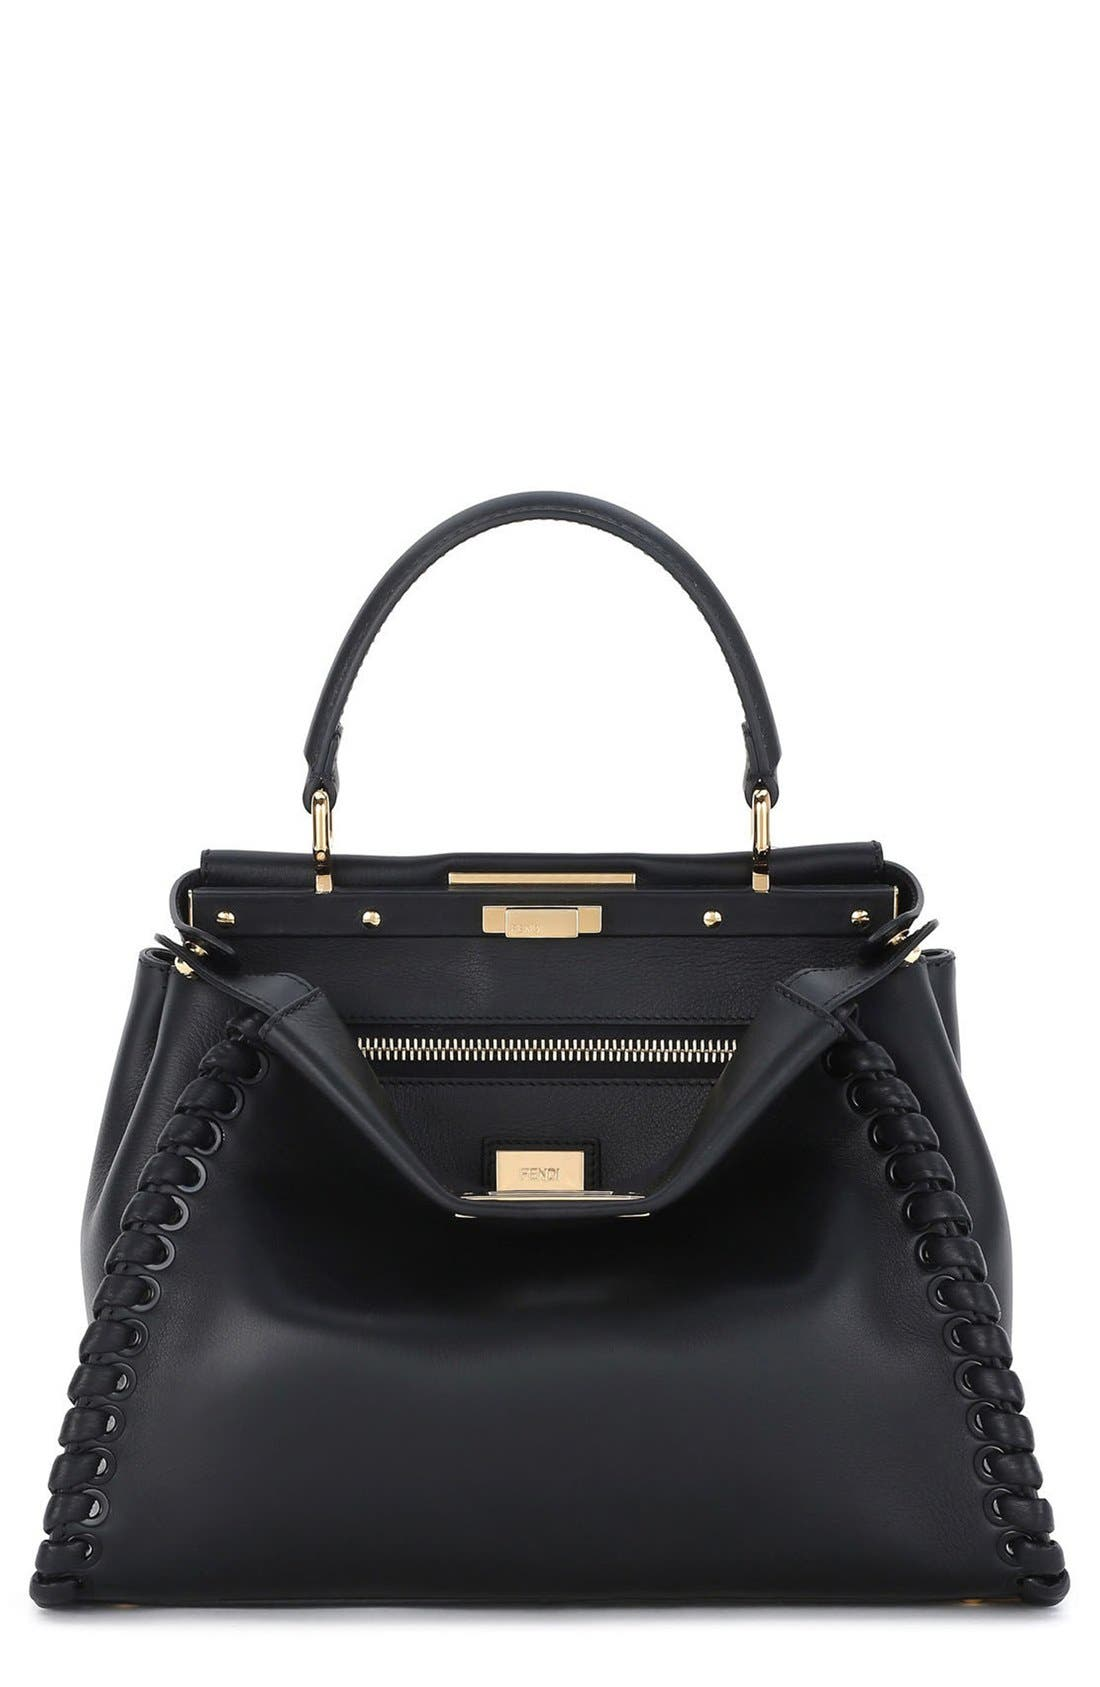 Fendi Medium Peekaboo Whipstitched Calfskin Leather Satchel